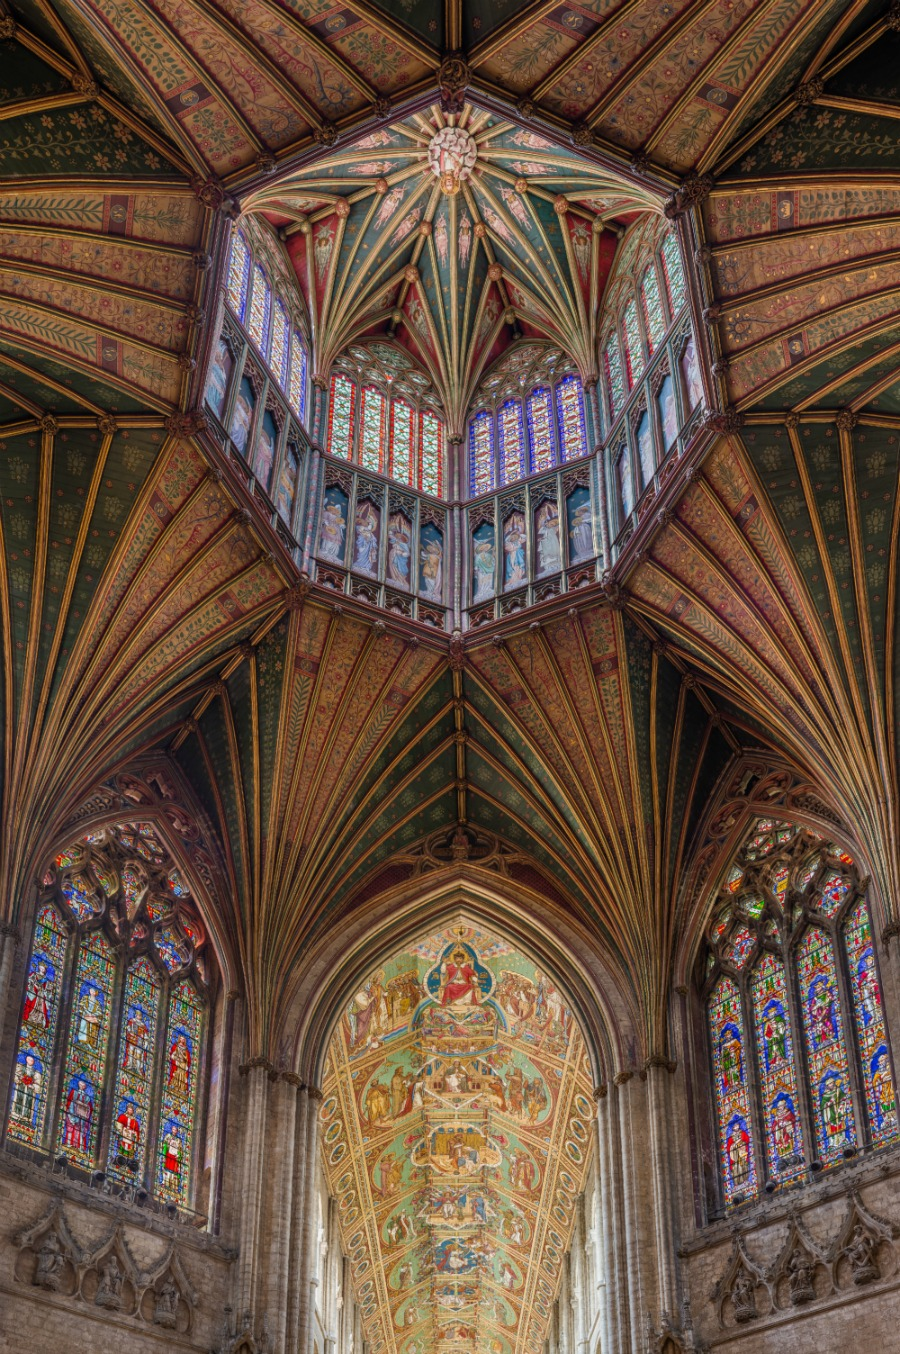 Ely Cathedral - The ceiling of the nave and lantern, viewed from the Octagon. Credit: David Iliff